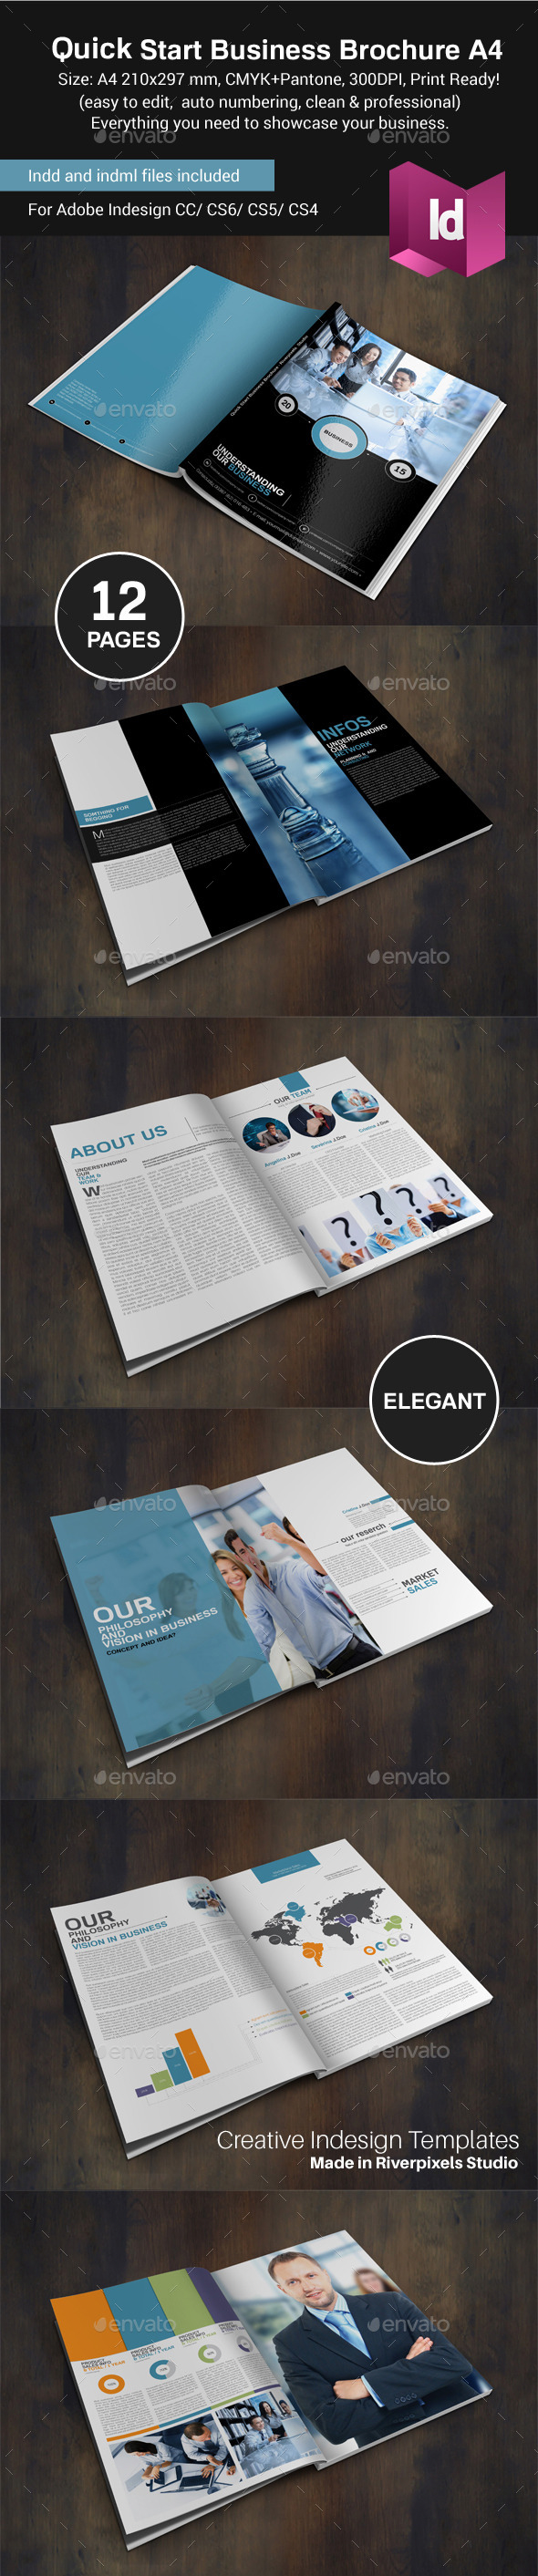 GraphicRiver Quick Start Business Portrait Version 8847698